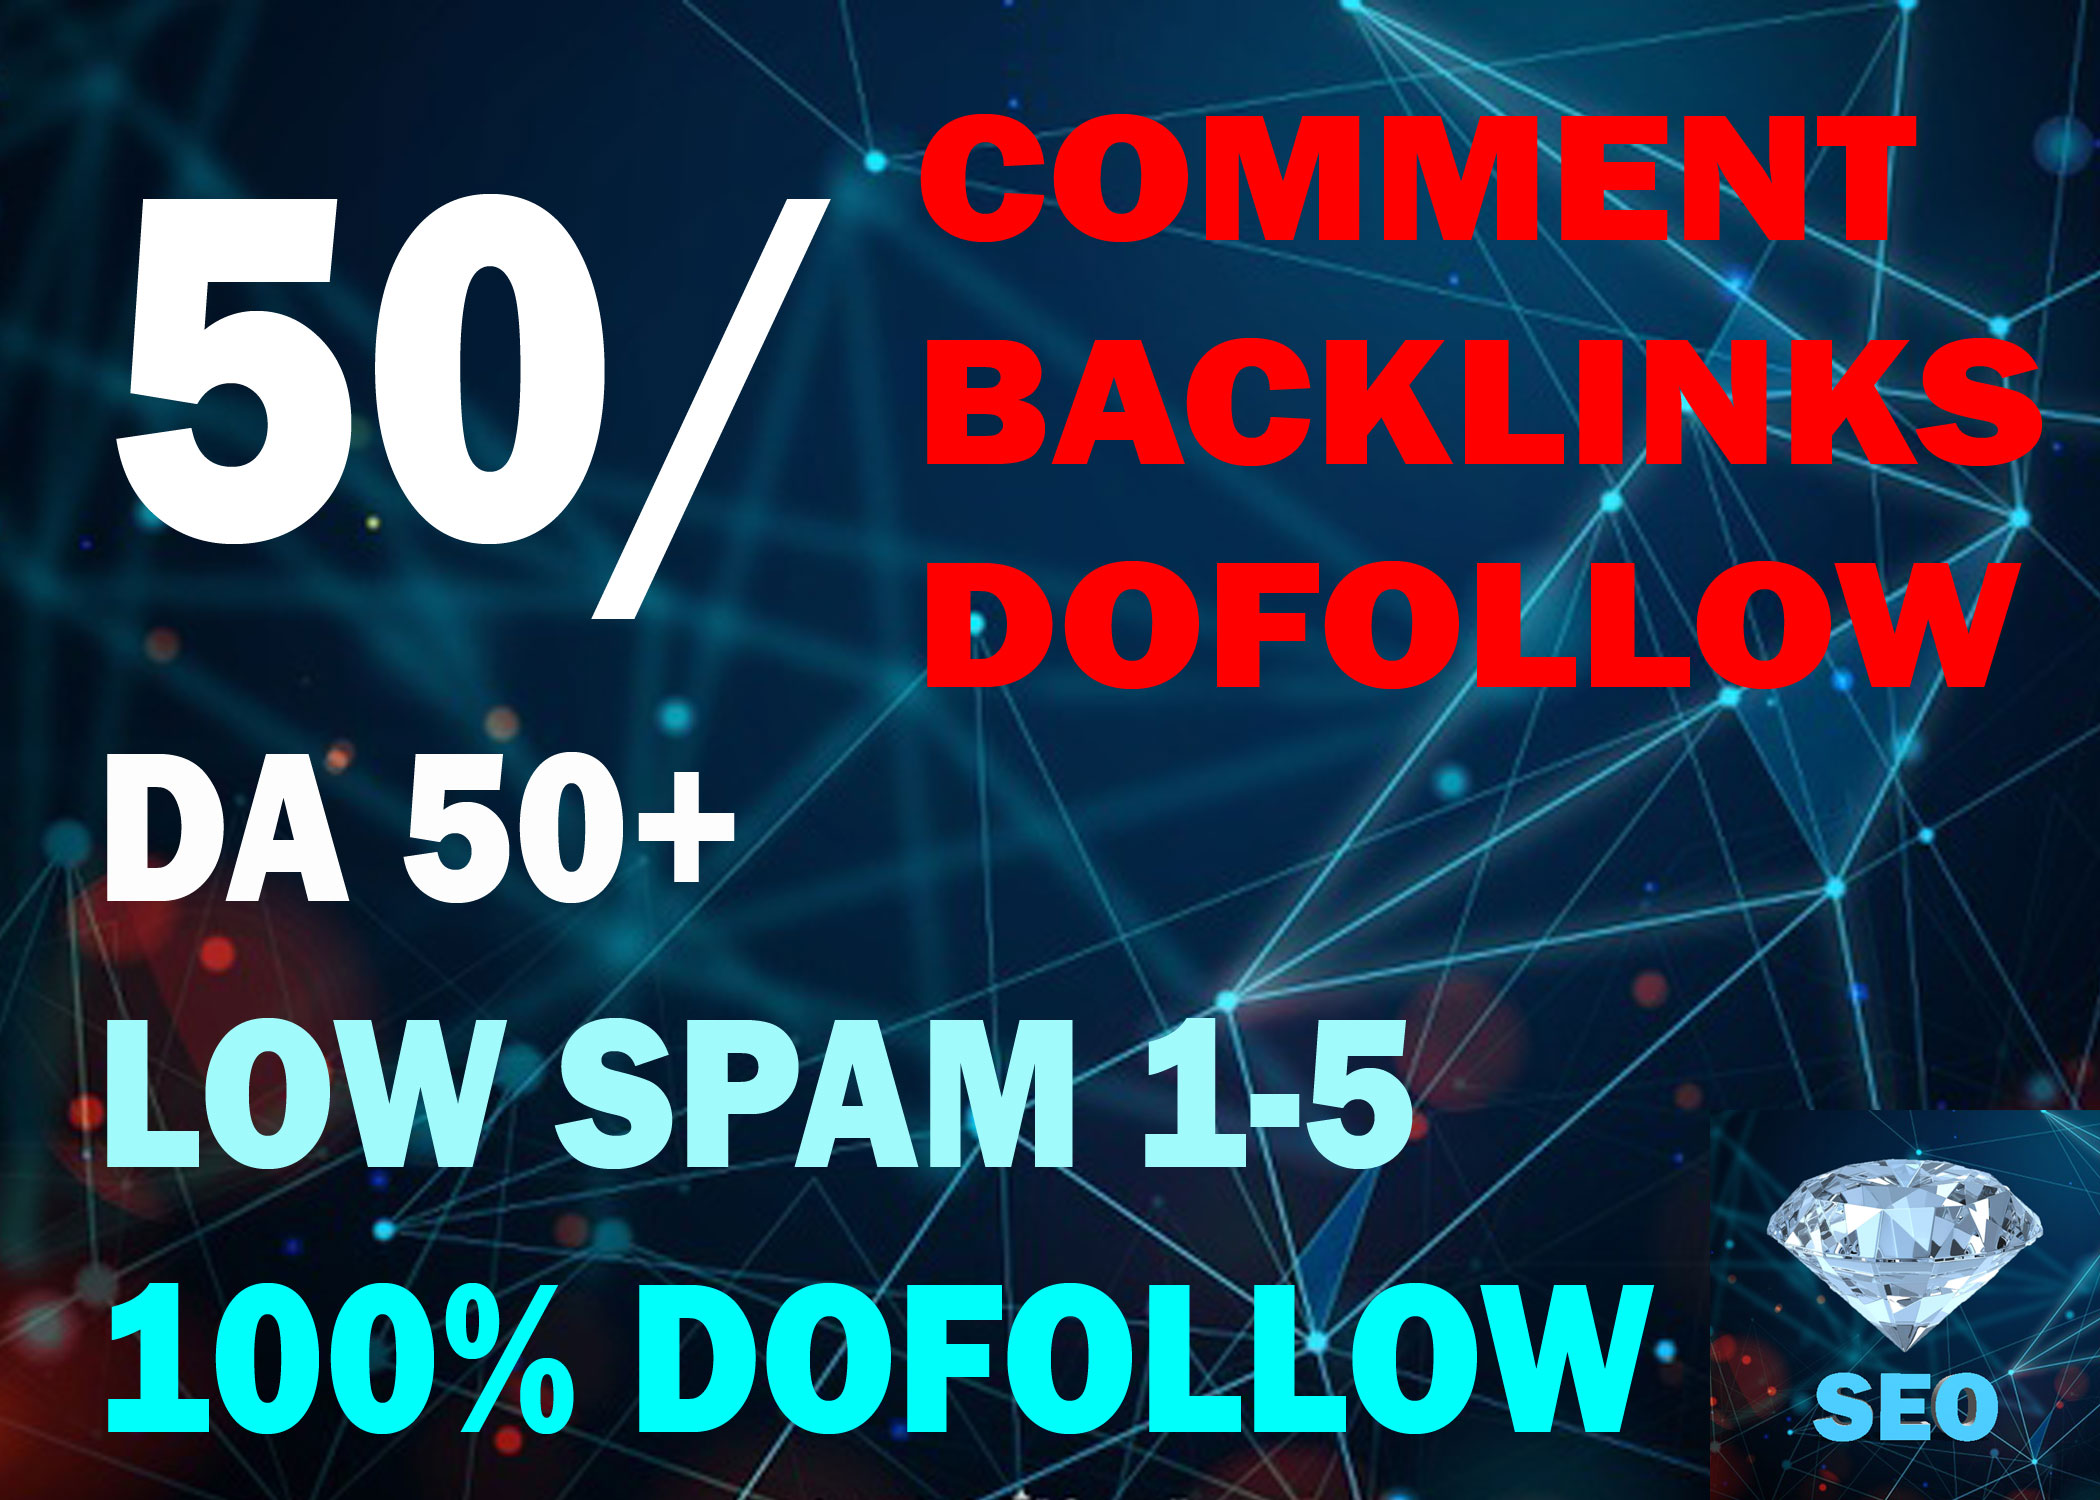 50 Comment Backlinks Withe 50+ Da And Low Spam 1-5 Dofollow